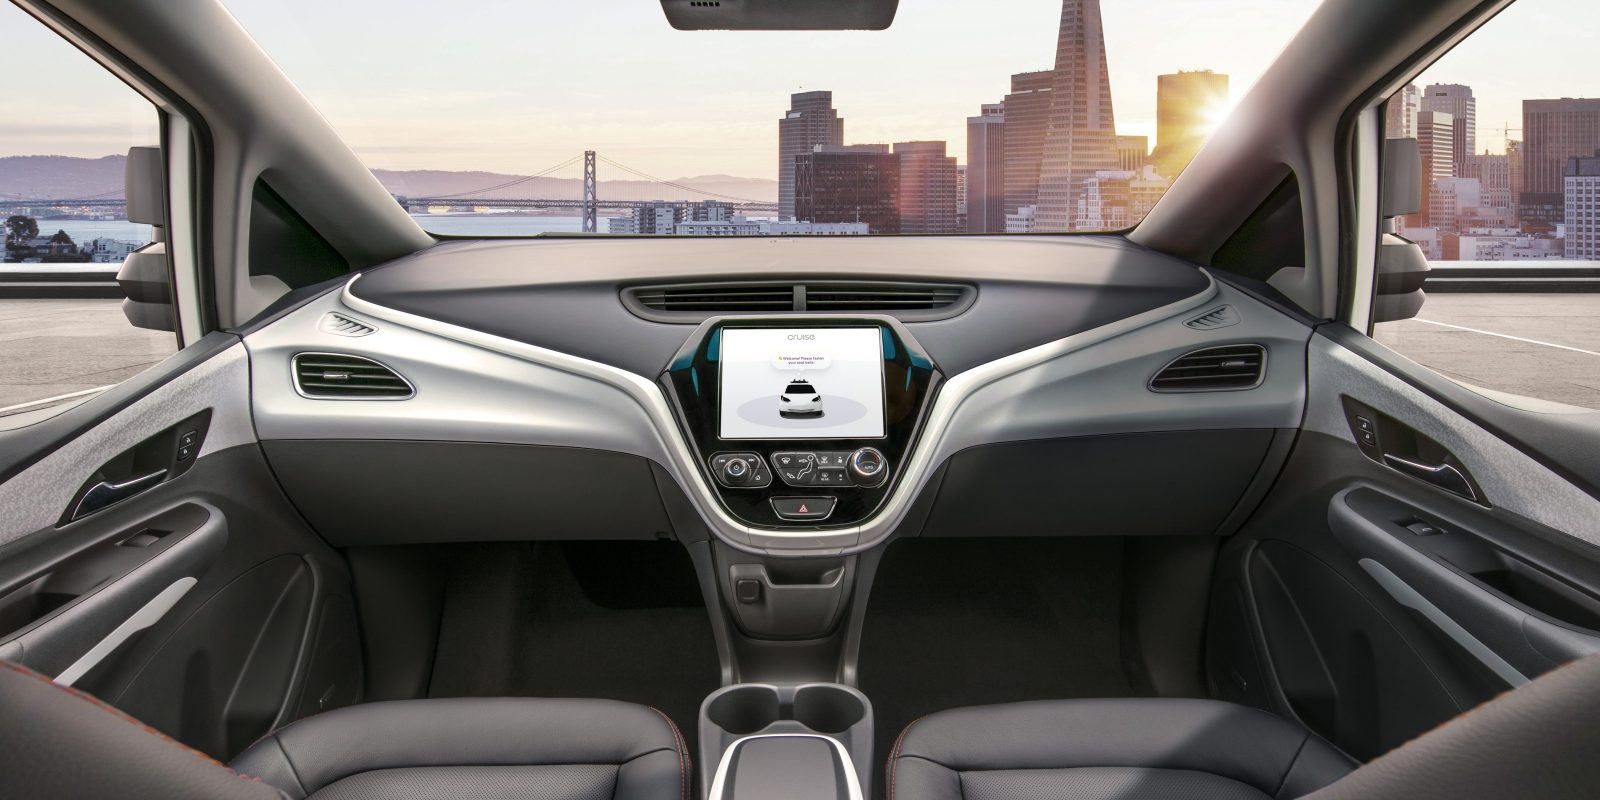 GM unveils autonomous Bolt EV without steering wheel or pedal, aims to bring it to market next ...